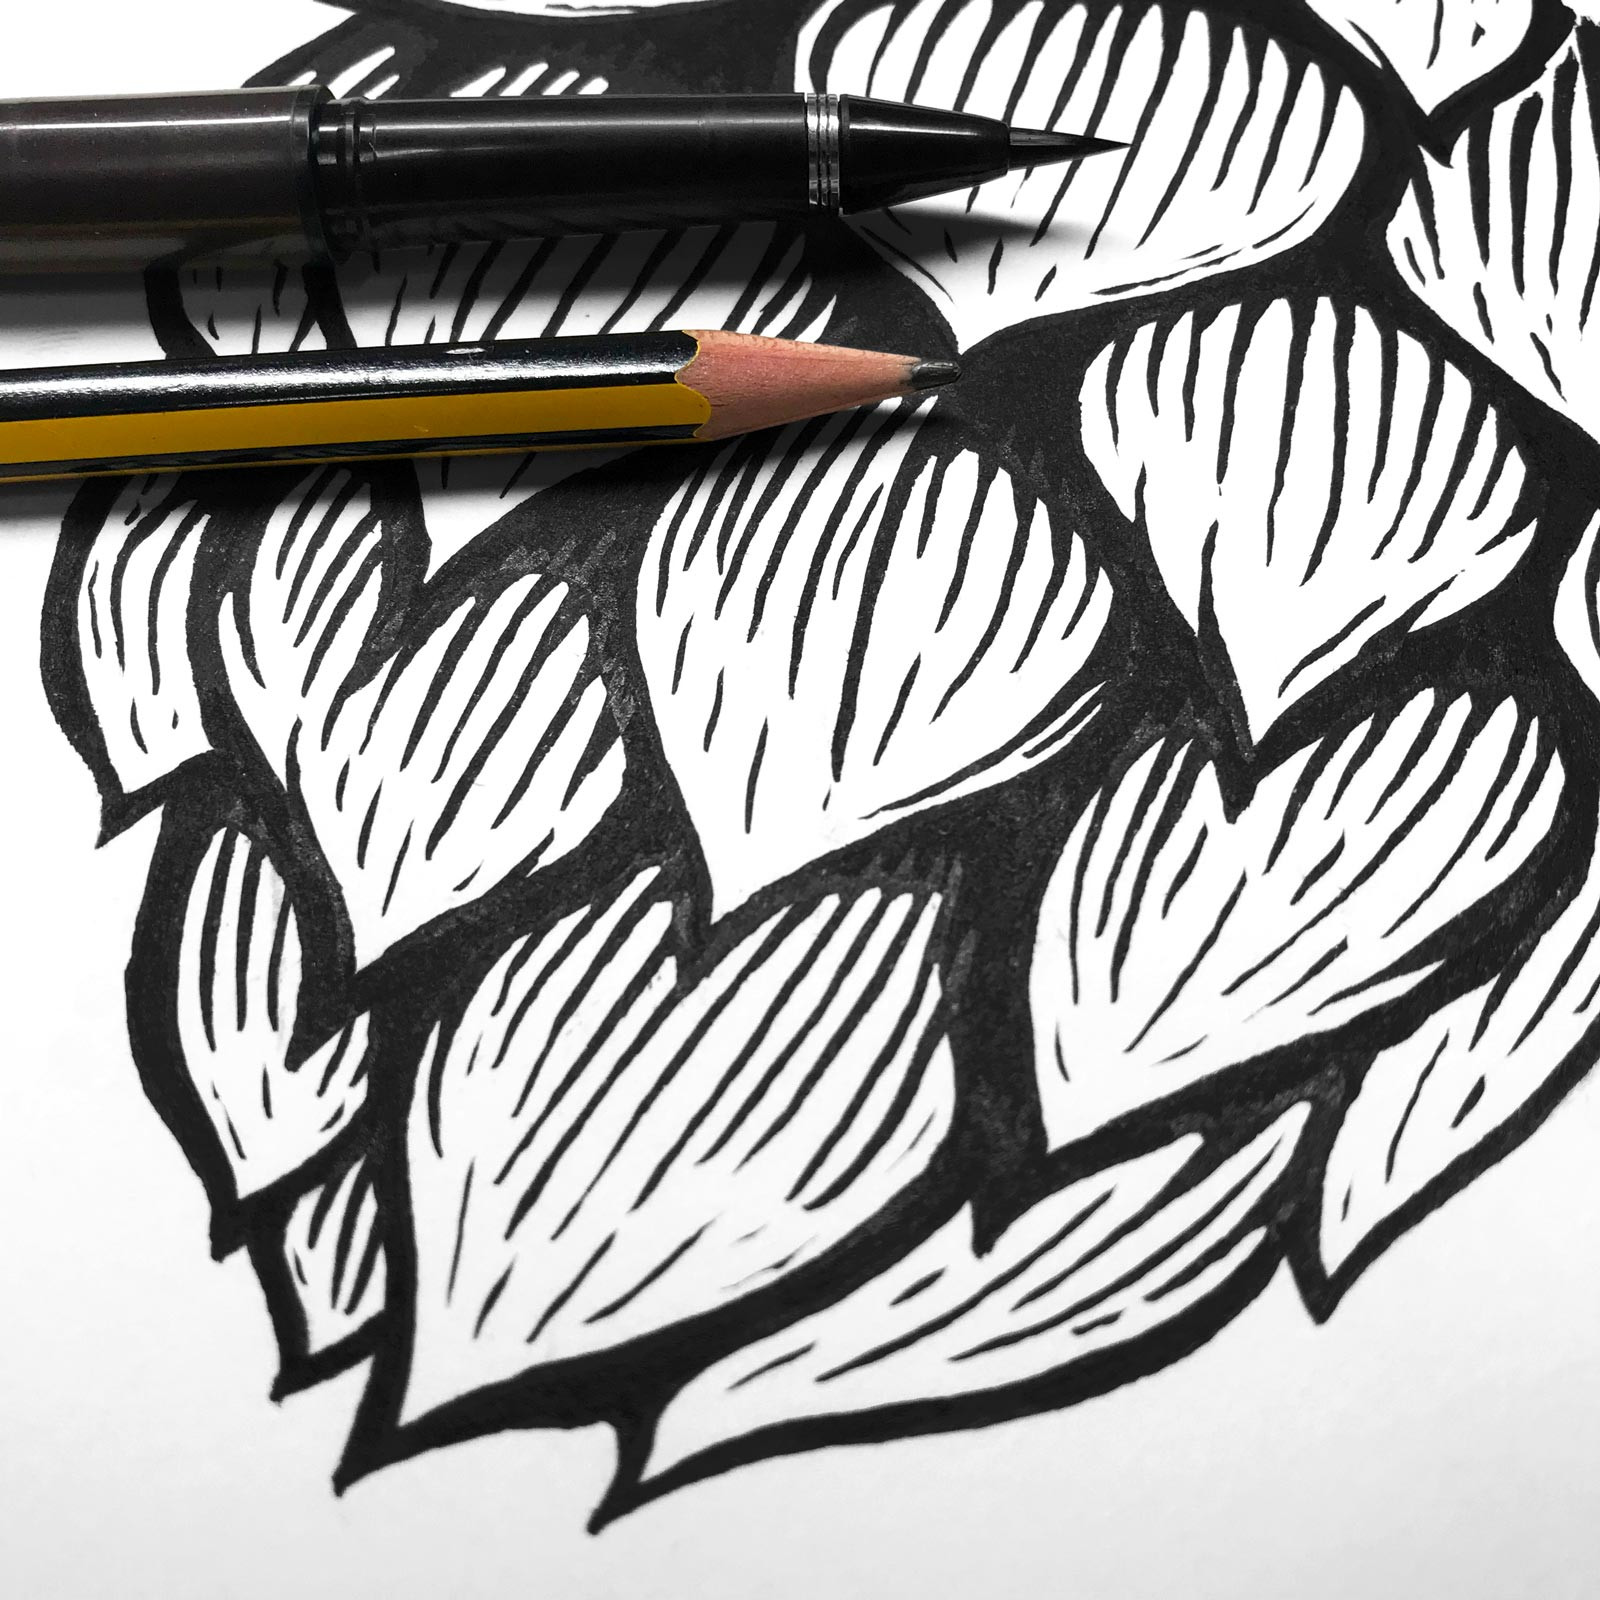 Hop Drawing for Redchurch Apricot Pale Ale Label Design